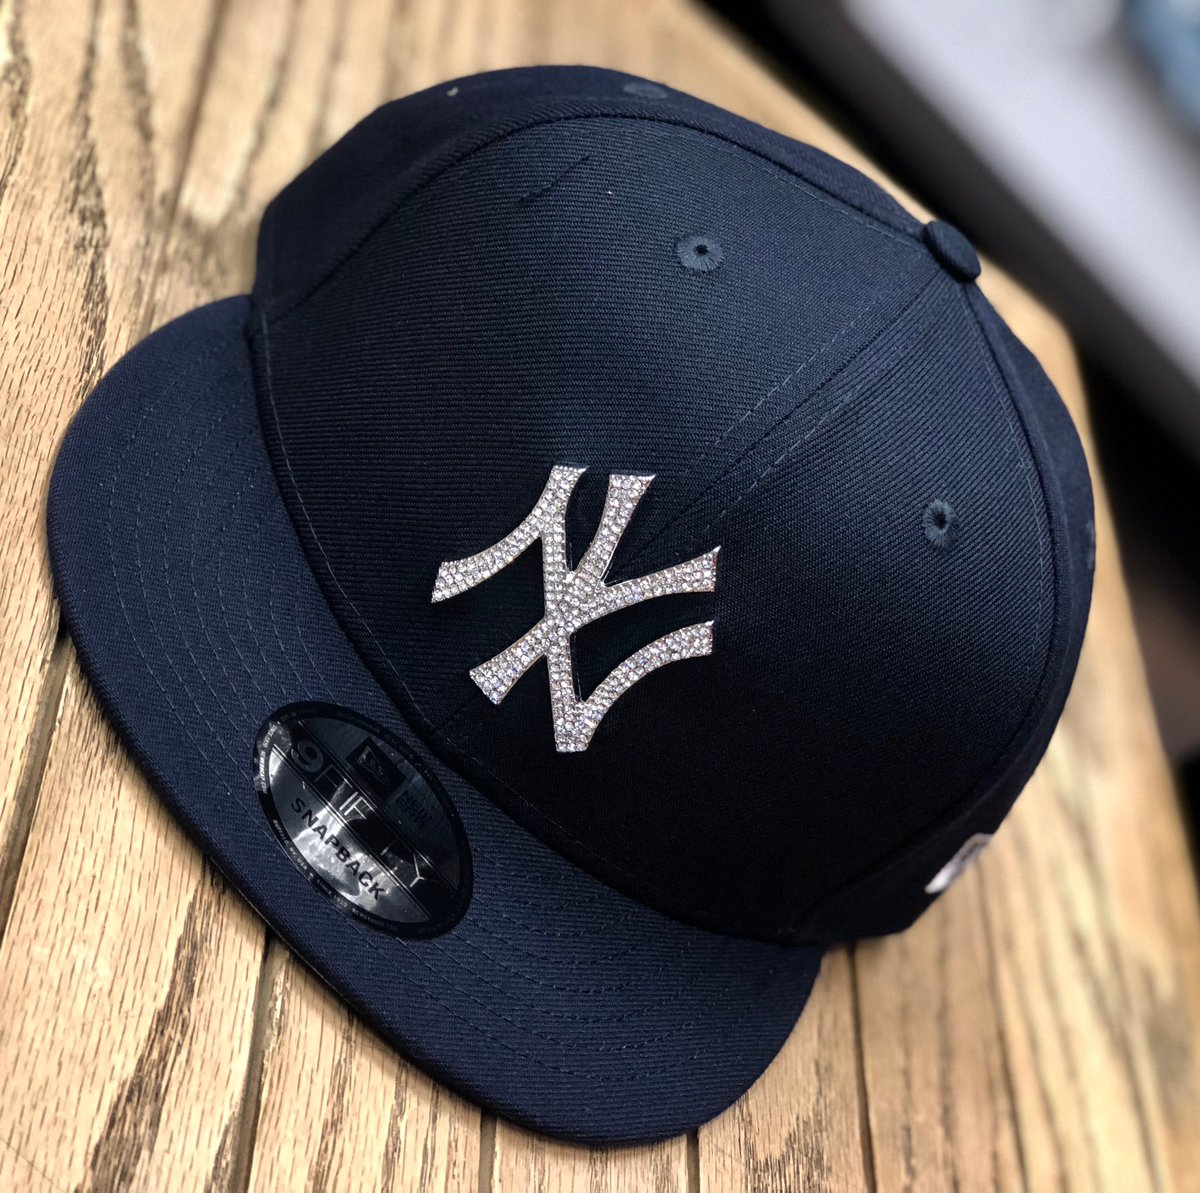 New Era  Snapbacks available at a StreetGame near you!  #newera #neweracap #snapbacks #fitted #nba #mlb #caps #champions #sports #sportsleague #champs #teams #favorite #shopping #retail #streetwear #apparel #9fifty #9fiftysnapback pic.twitter.com/FE9SHe5XI6